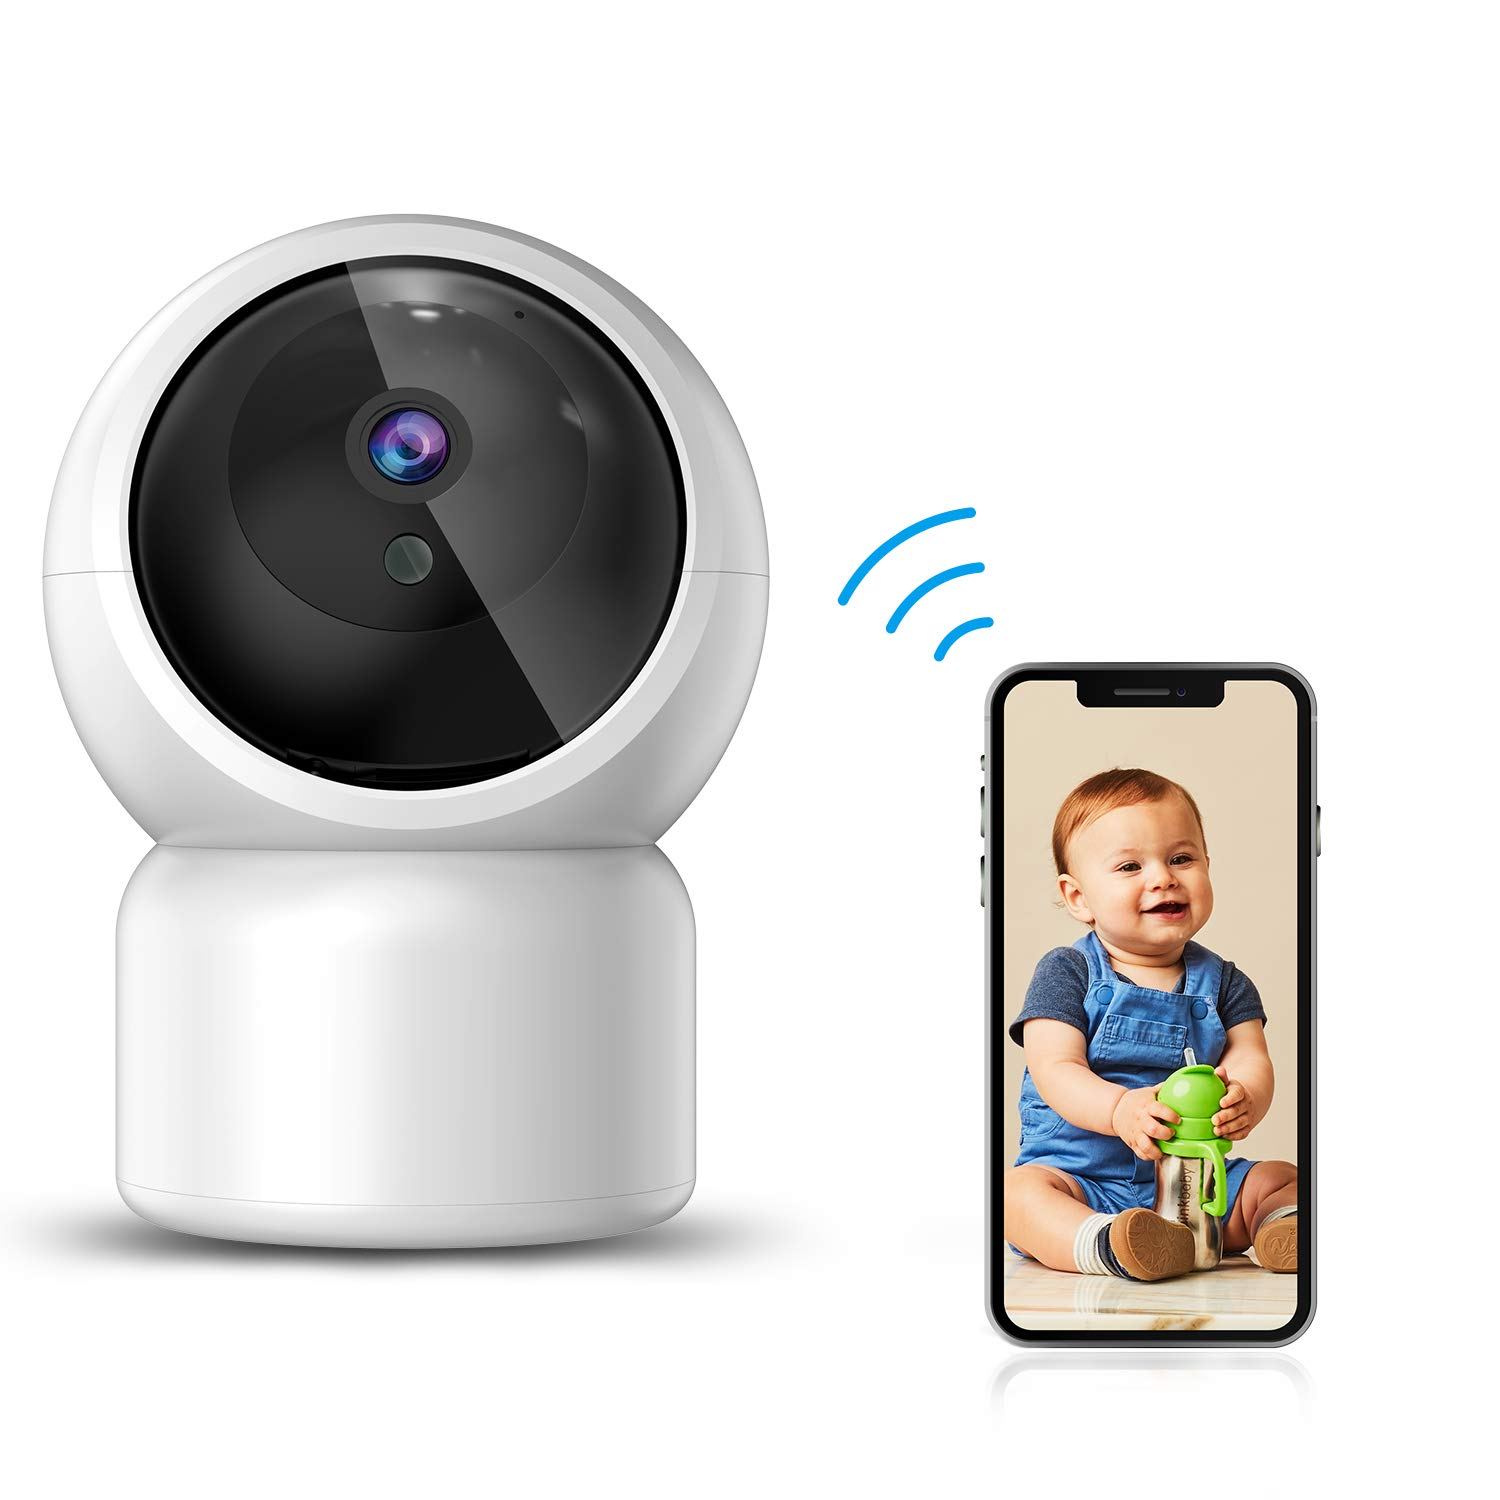 WiFi IP Camera Baby Monitor by JUMPER 1080P Wireless Home Security Camera with Night Vision Motion Detection 2-Way Audio for Baby, Elder, Pet Camera Monitor